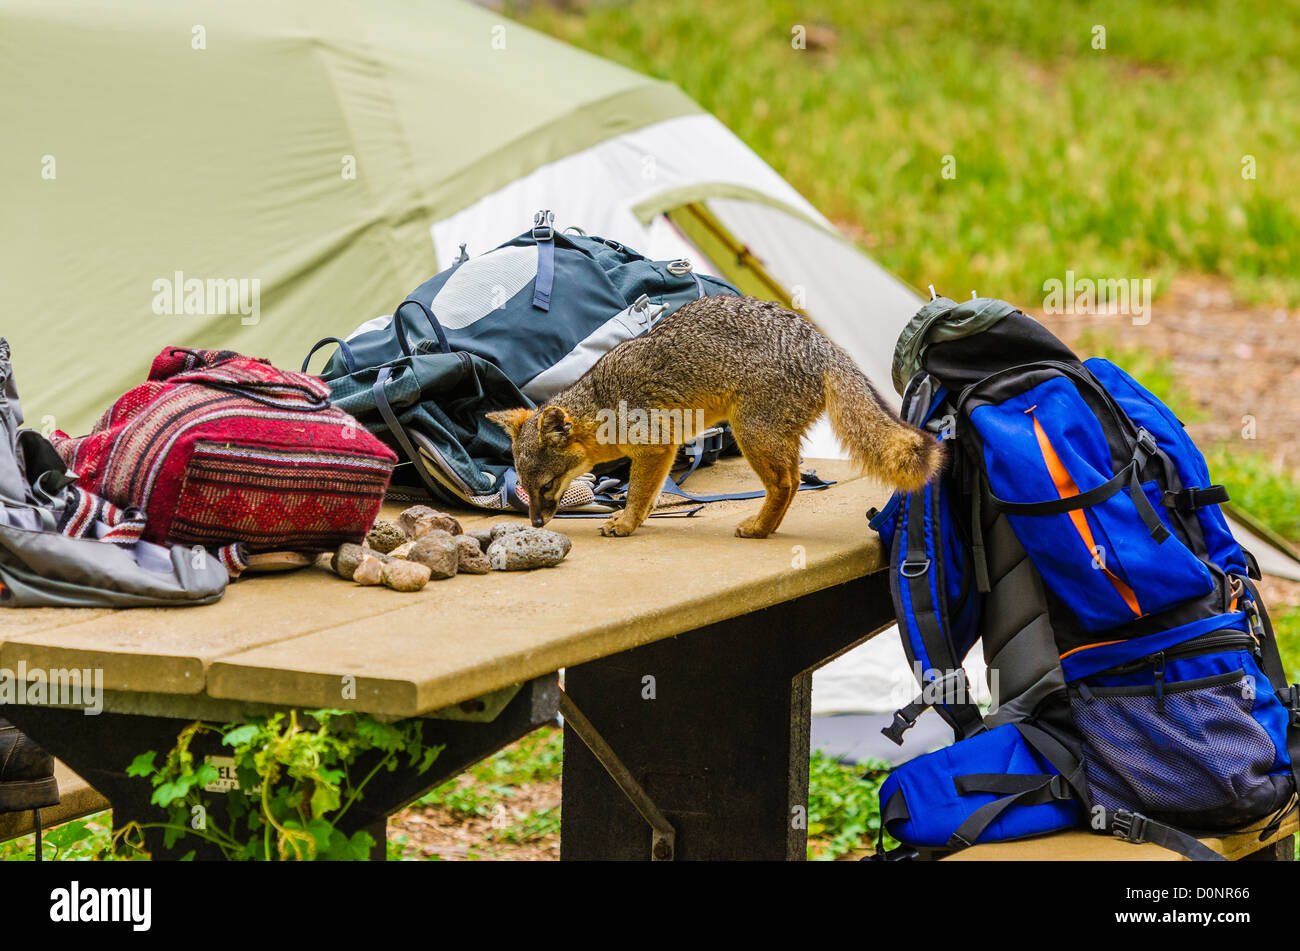 island fox and camping gear at scorpion campground, santa cruz stock